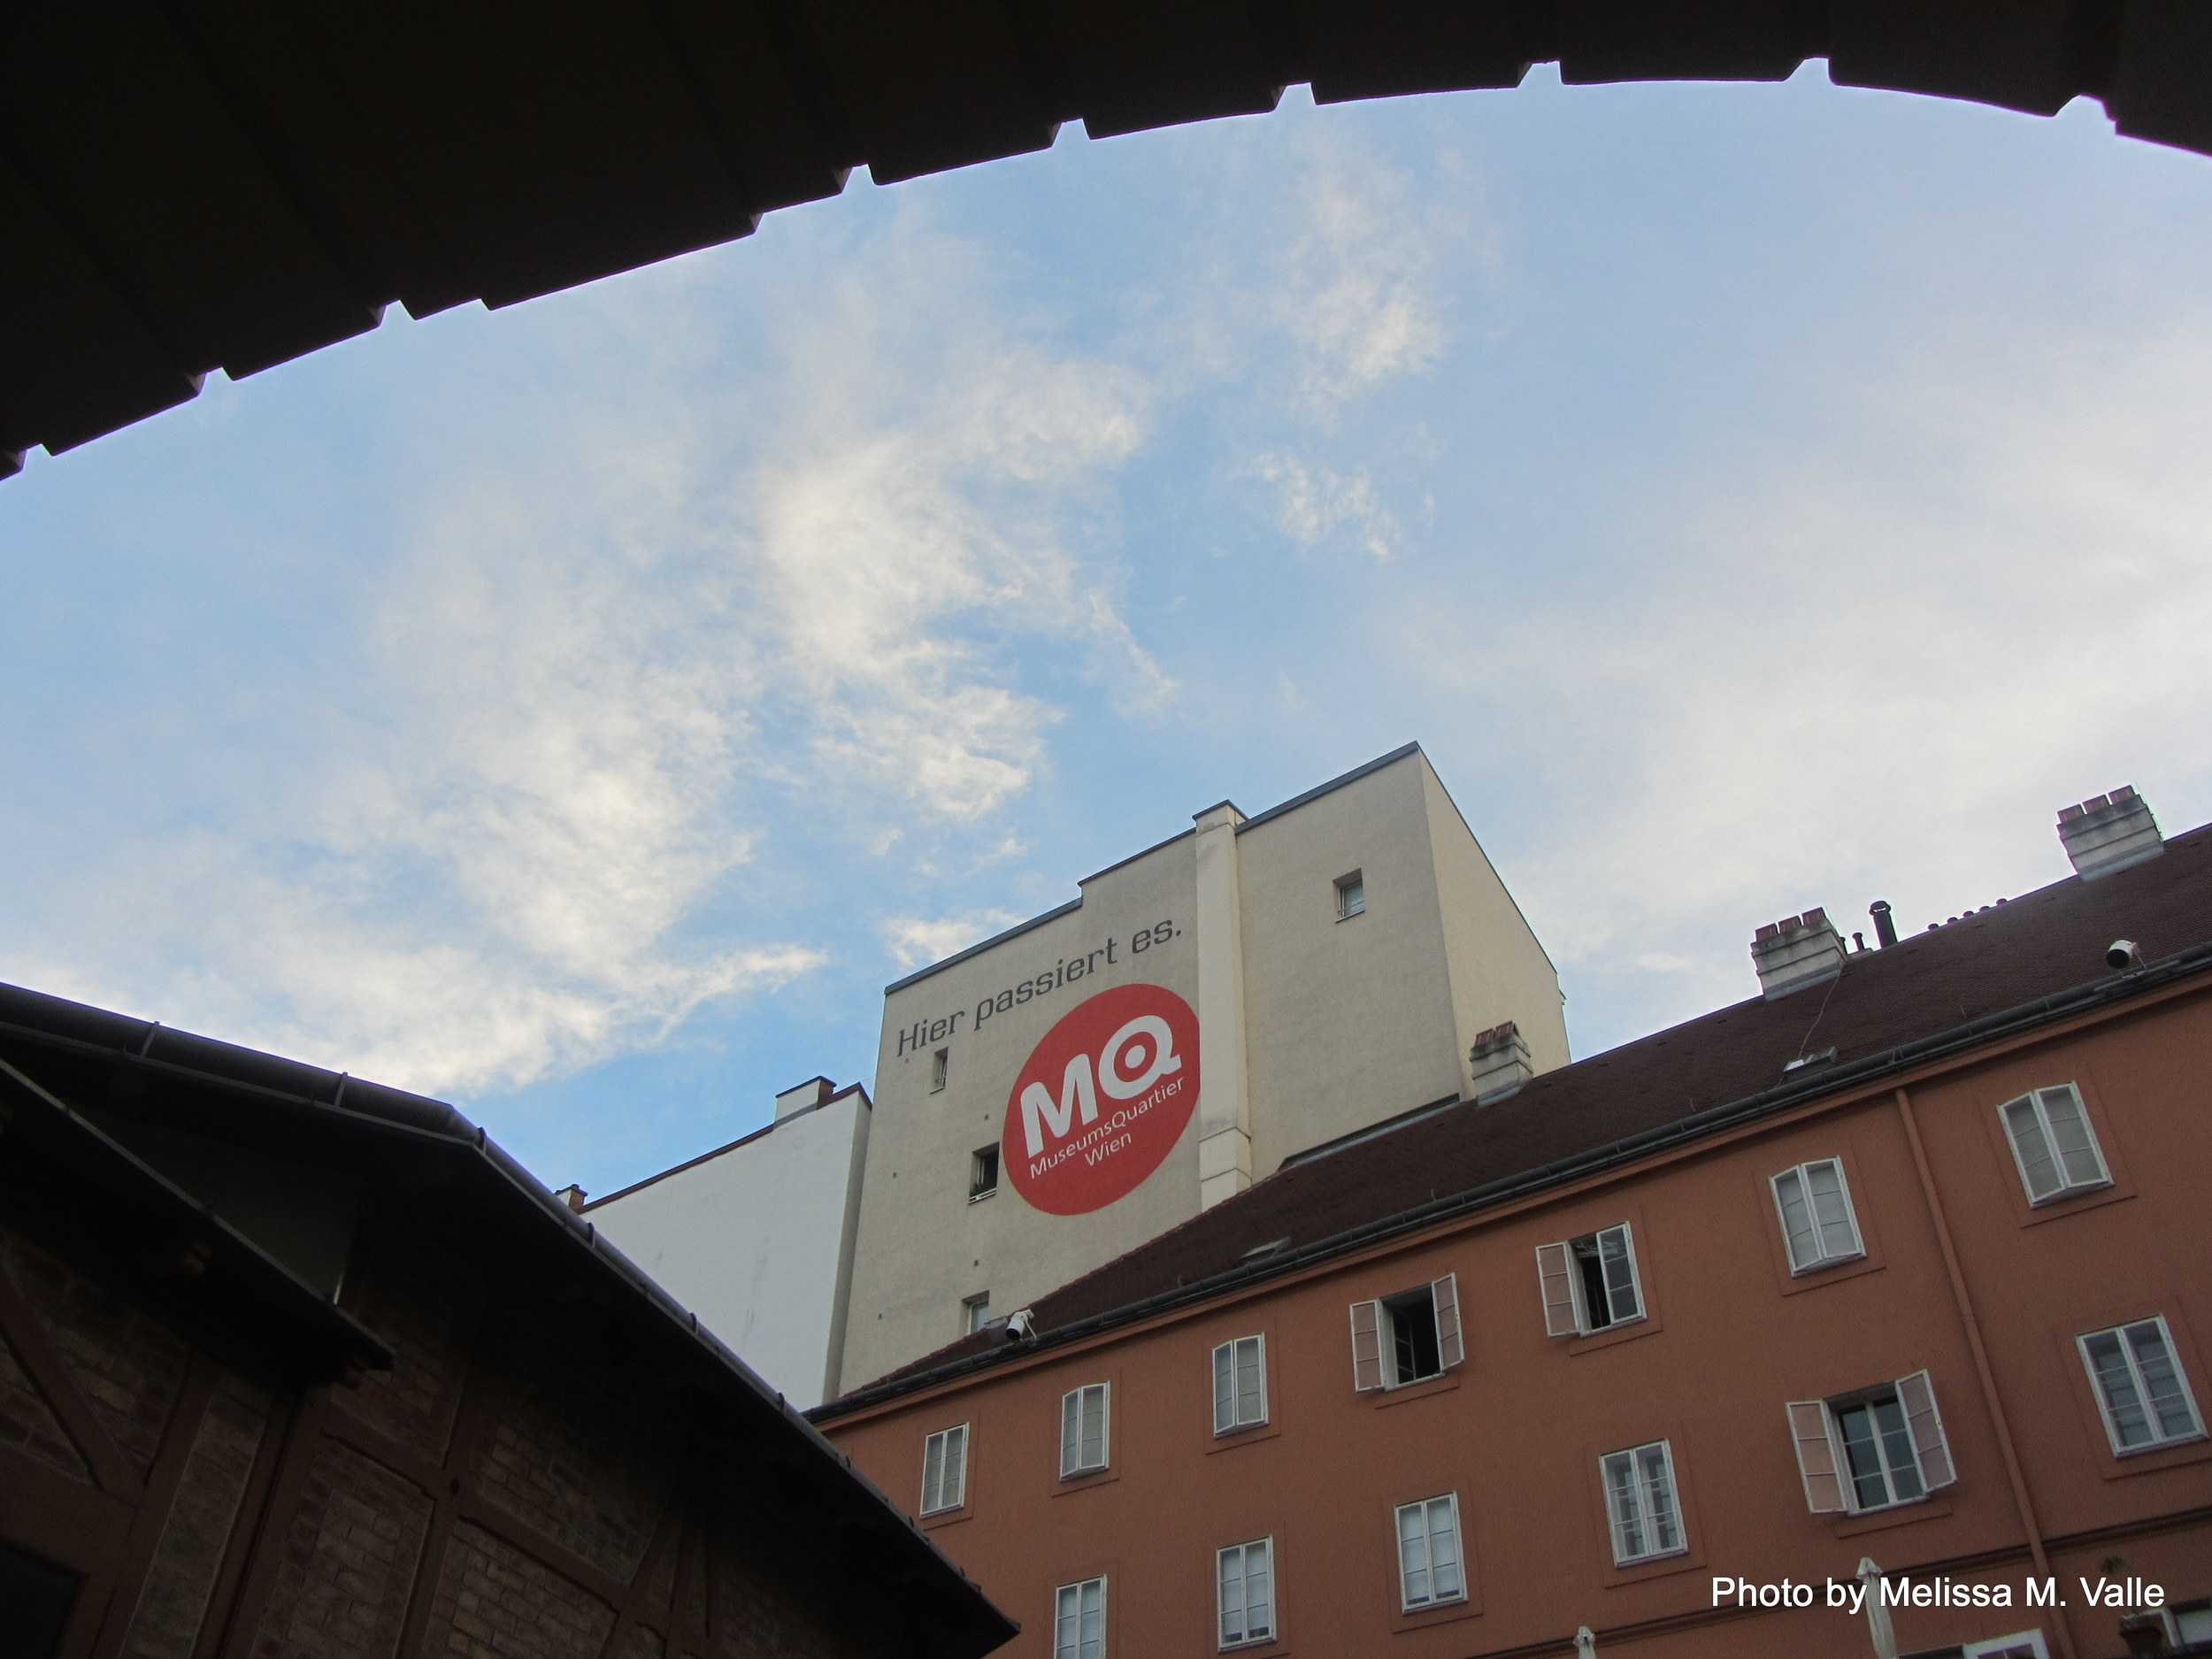 7.7.14 Vienna, Austria-wining it up in Museum Quartier after Amin lecture (3).JPG